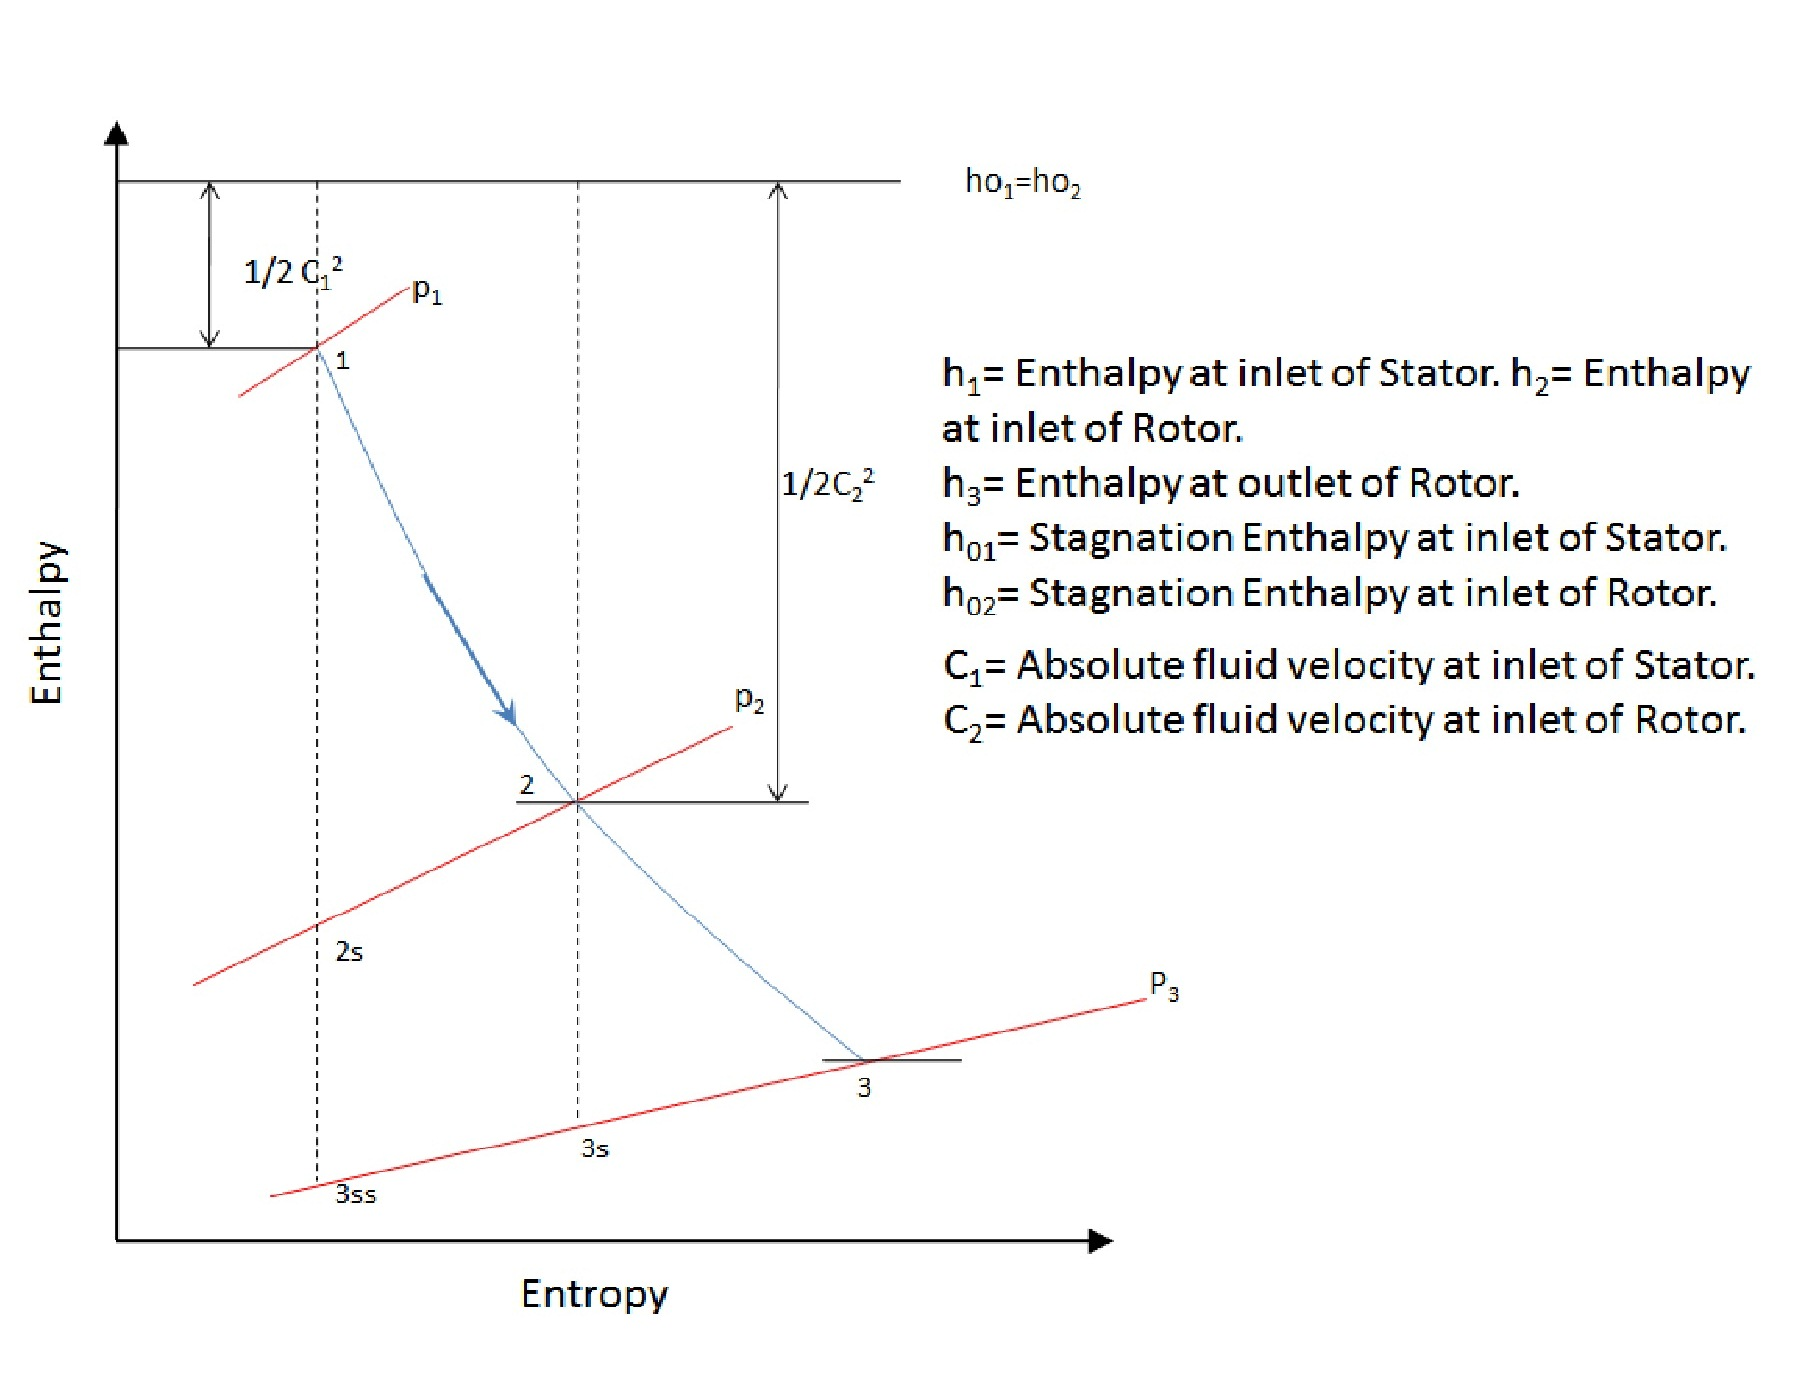 Plot Diagram Poster: Enthalpy vs. Entropy diagram for stage flow in turbine..jpg ,Chart